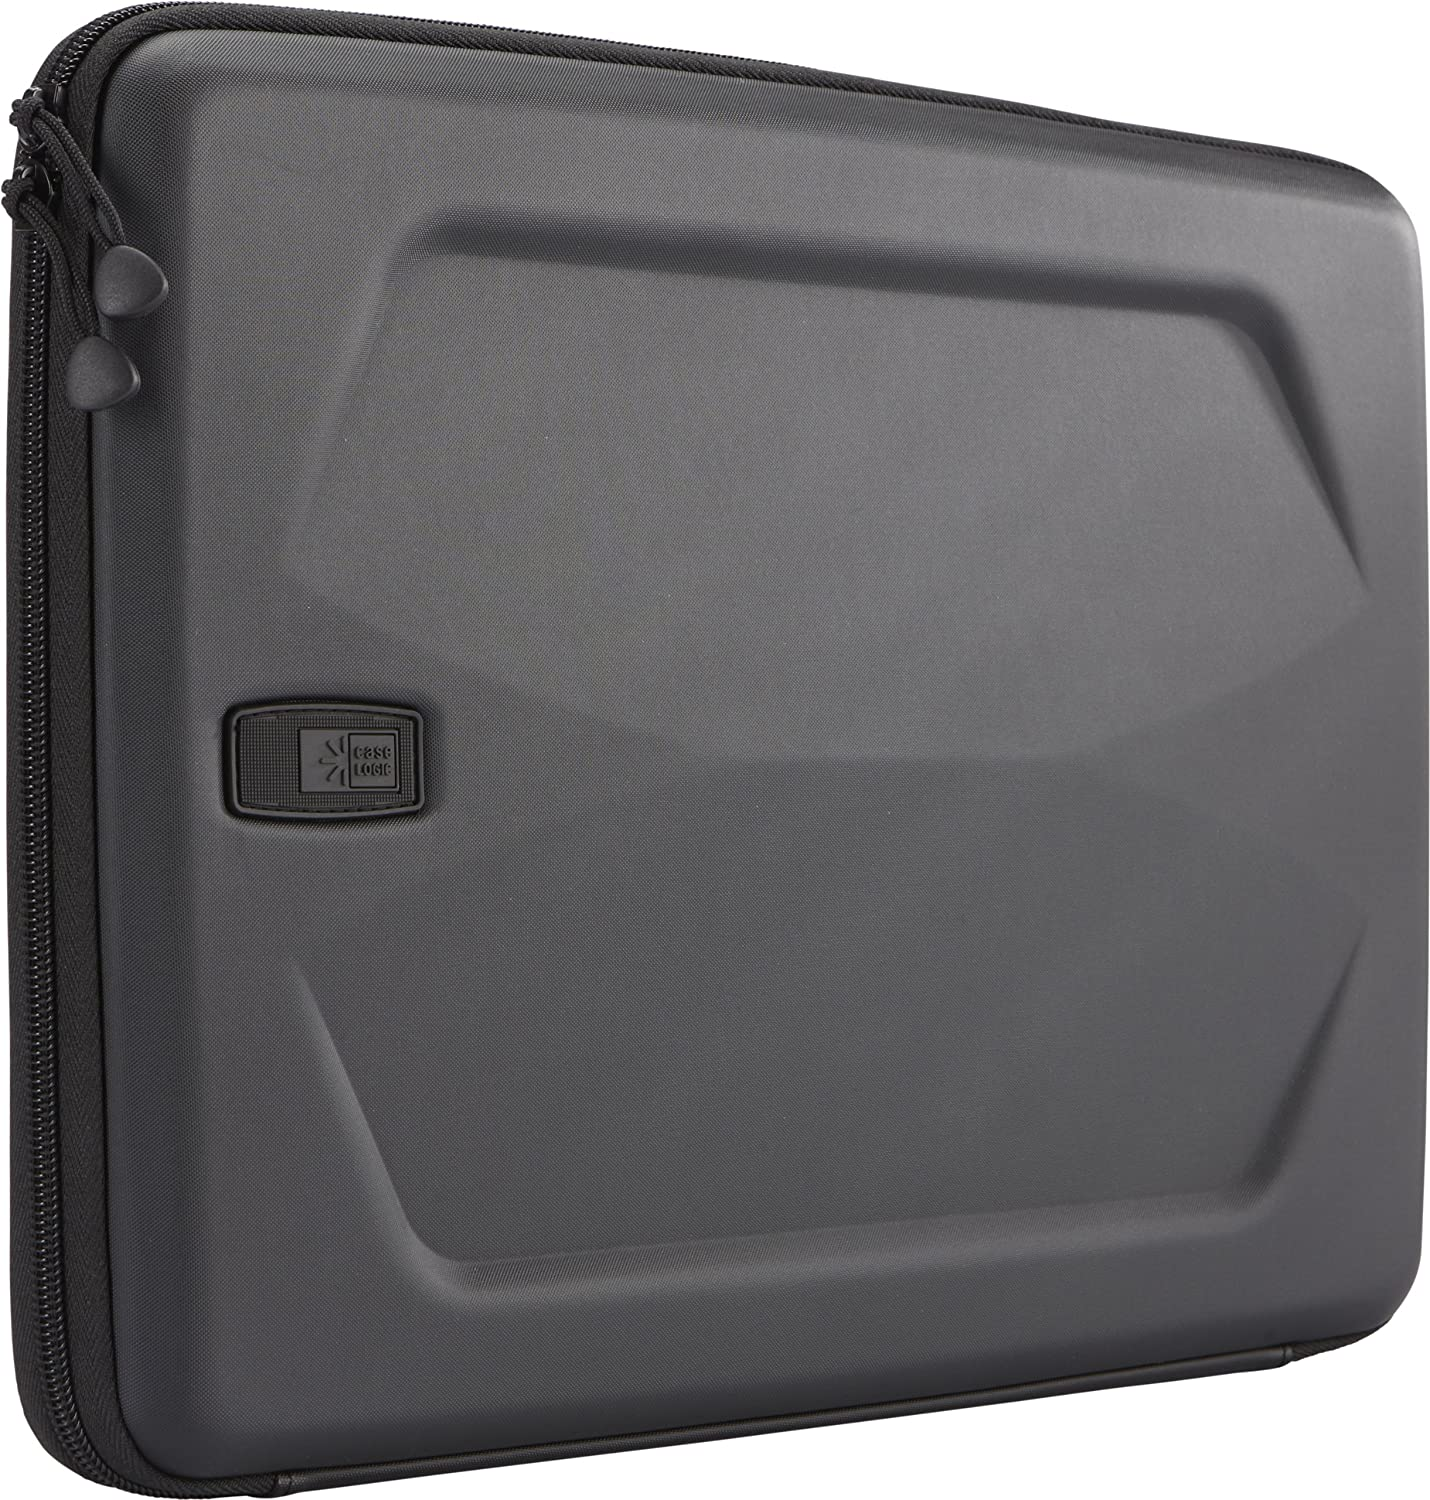 Case Logic Sculpted Sleeve for 13.3-Inch MacBook Pro and PC - Black (LHS-113Black) Caselogic